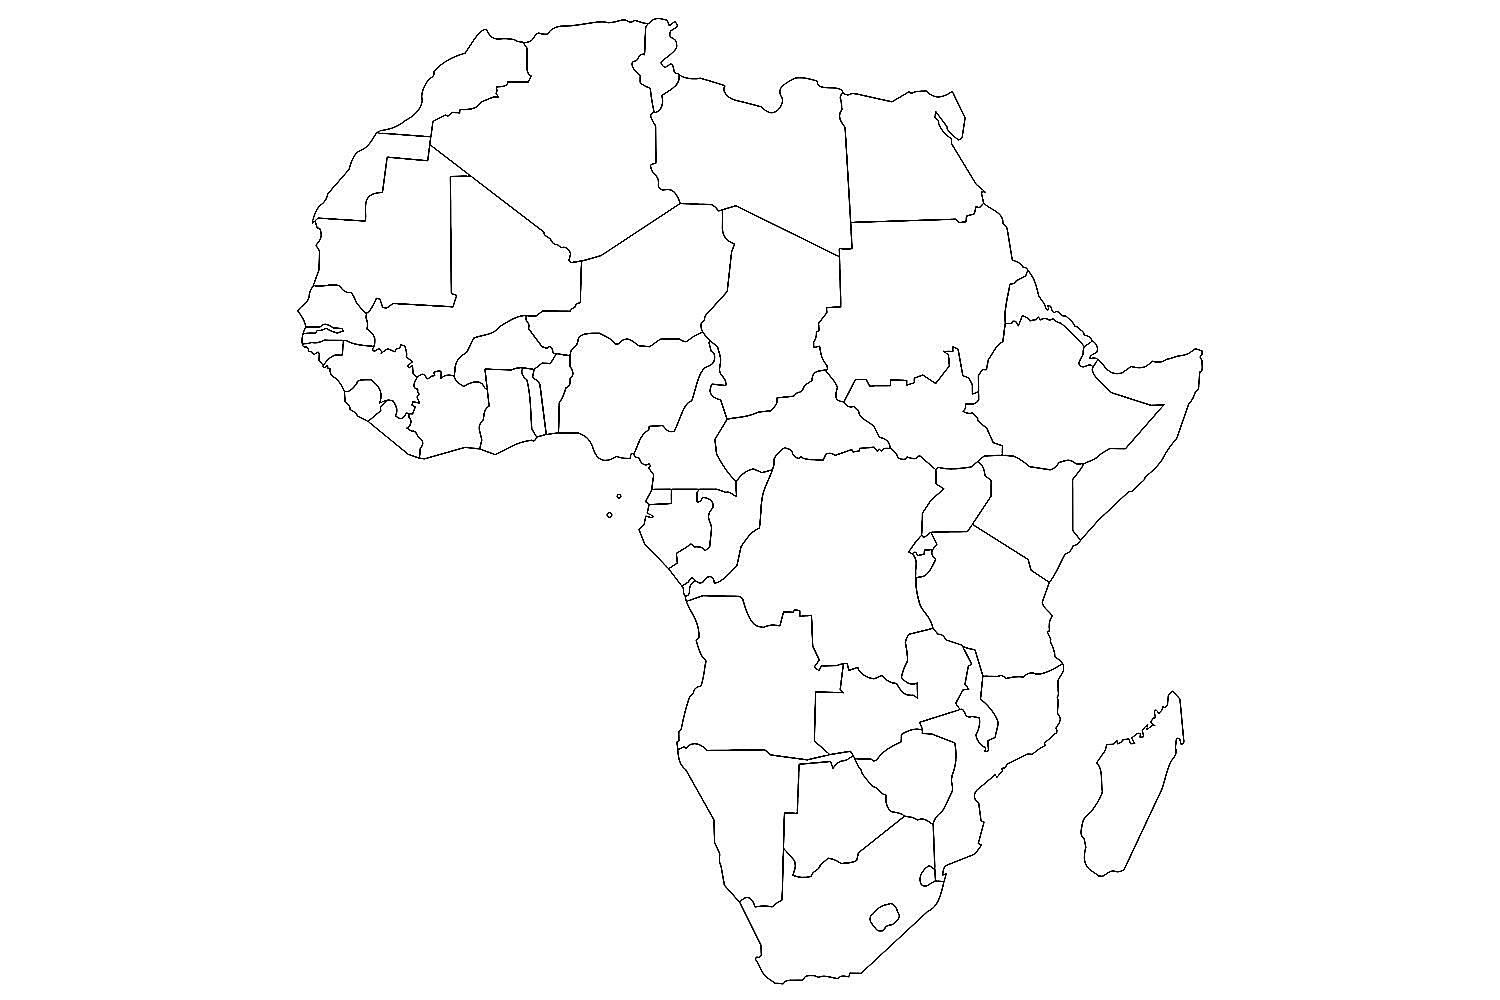 17 Blank Maps of the United States and Other Countries on map of countries that border france, map of france and turkey, map with countries border iran, map of france and neighboring countries, map of france regions departements, map of france and mountains, map of monaco and surrounding countries, map pyrenees france, map french regions in france, france and surrounding countries, map of brussels and surrounding countries, map of france and seas, map of france burgundy wine region, map of france and neighbouring countries, us map with surrounding countries, map of ancient greece and greek islands, map of france after french revolution, map of france wine growing regions, map with italy flag, map of france and outlying countries,